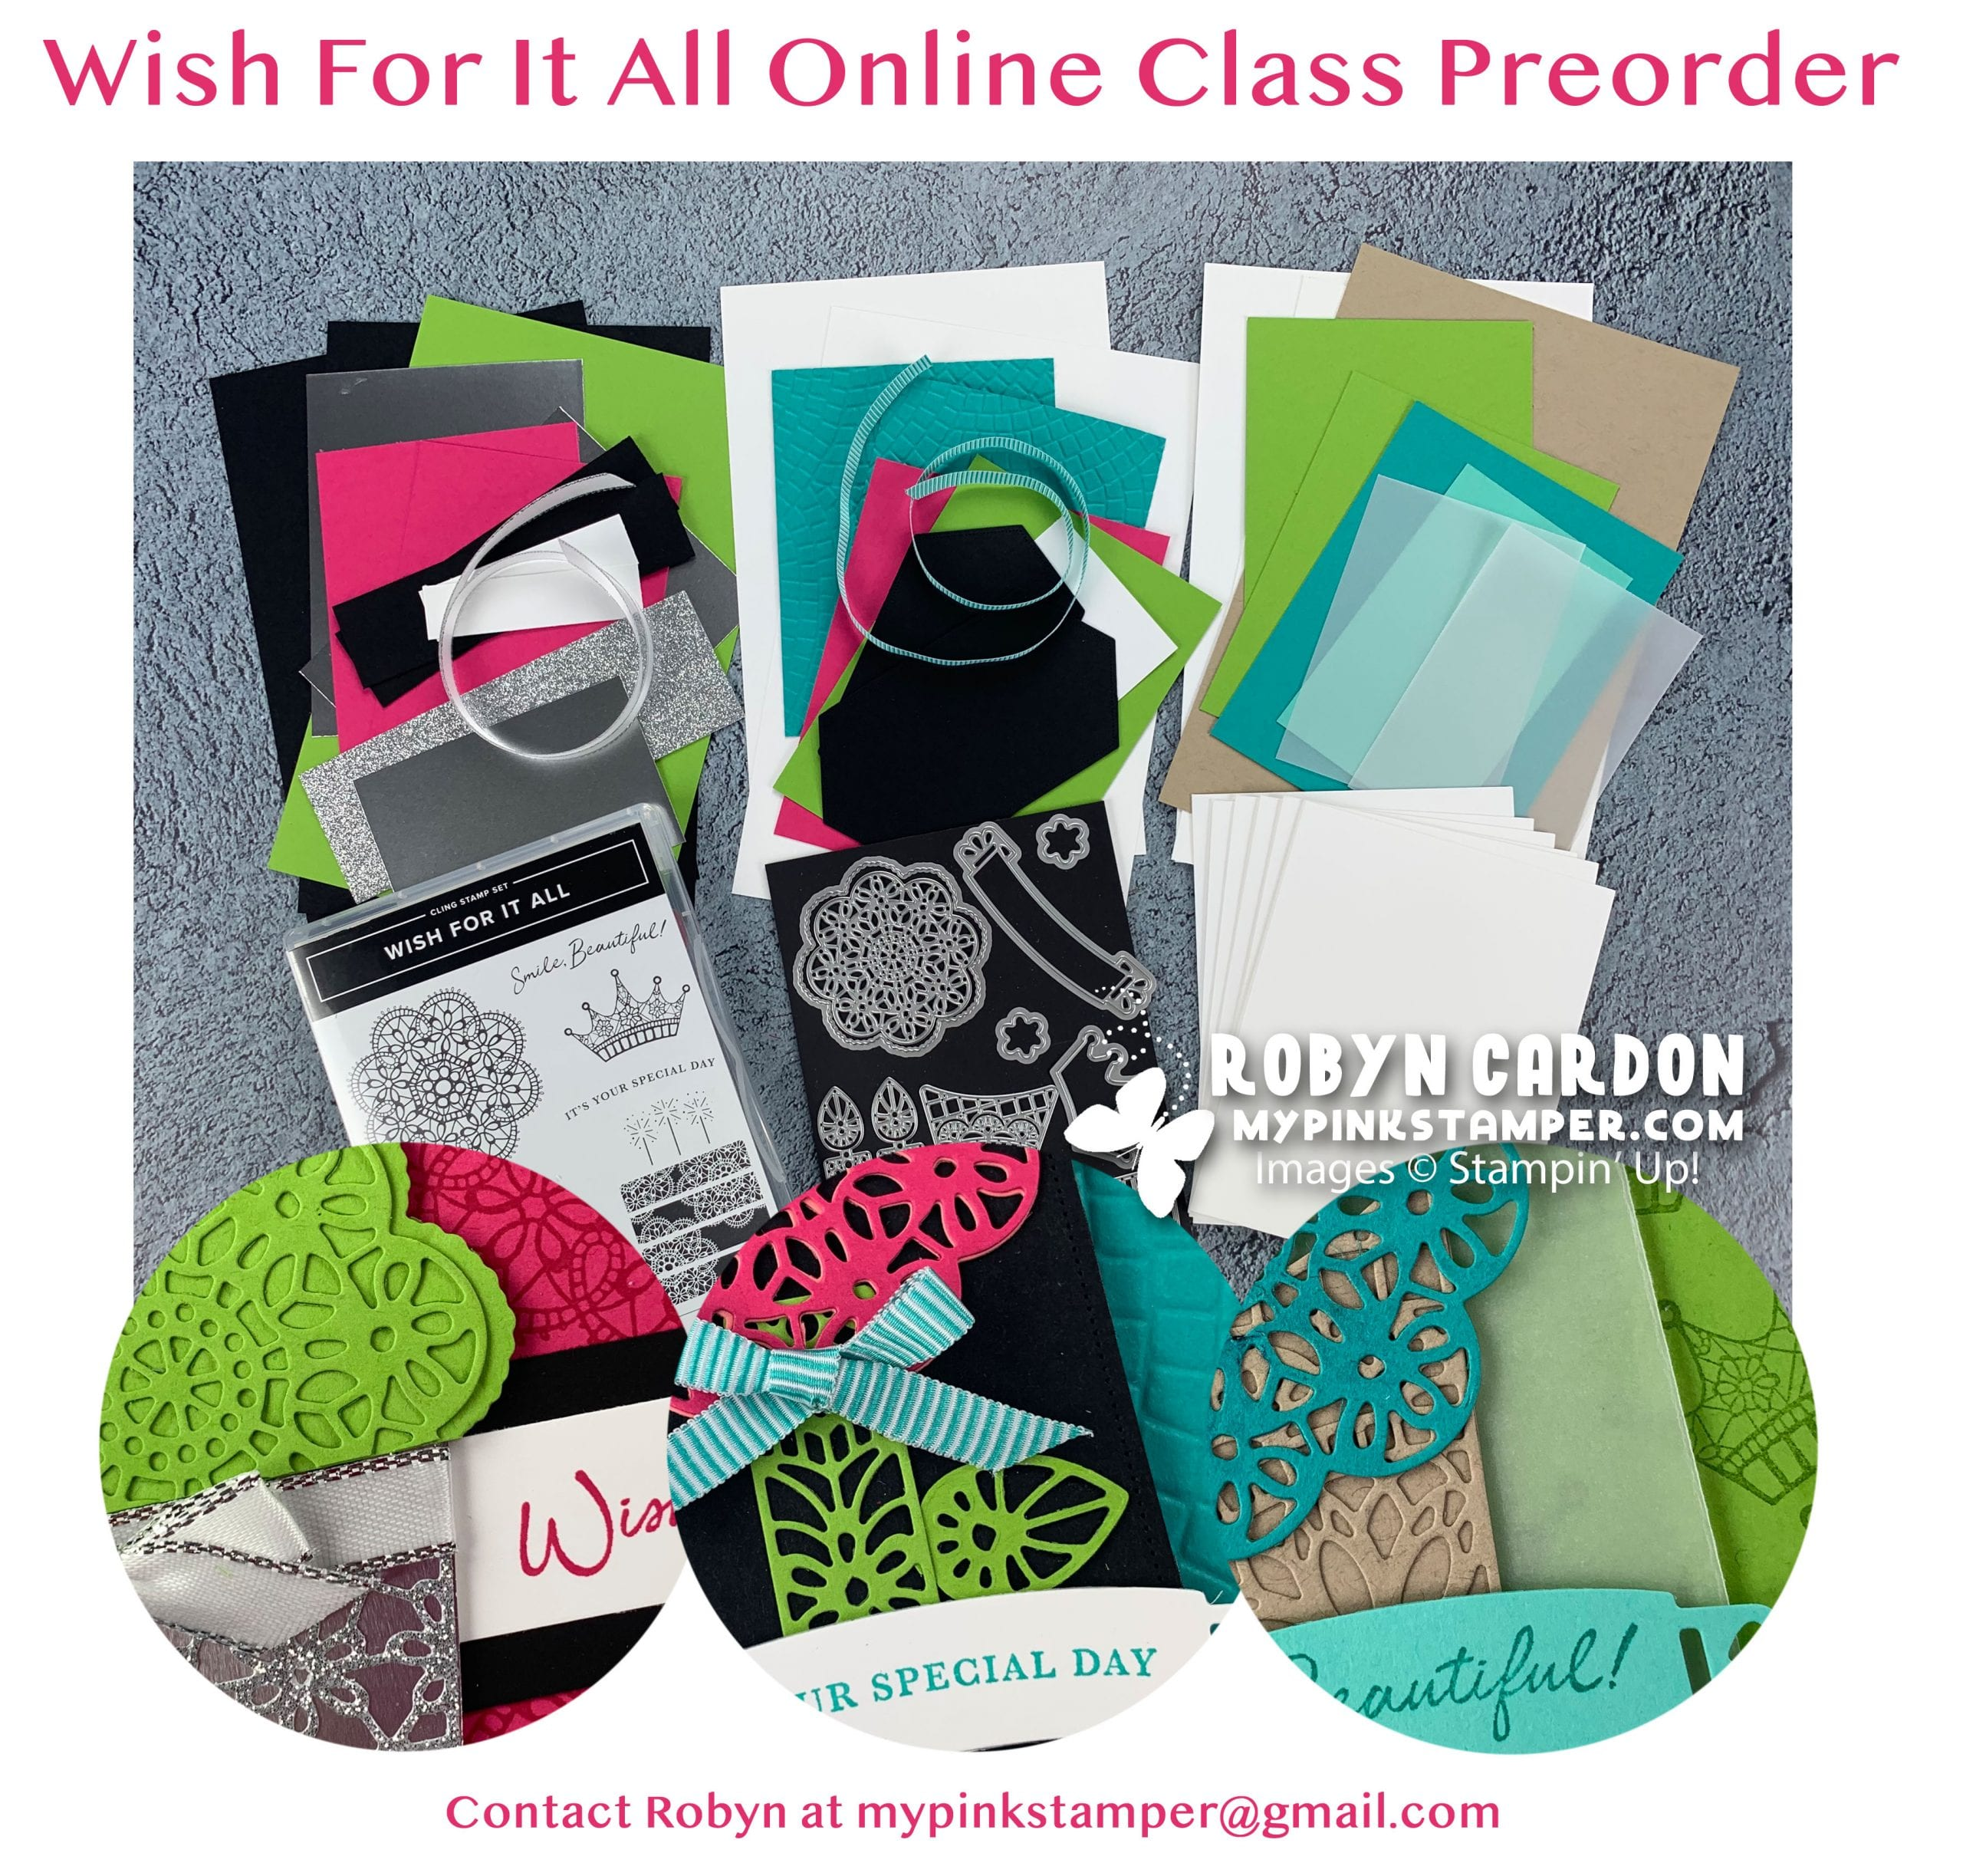 {NEW}Stampin' Up! Wish for it All Online Class Preorder!